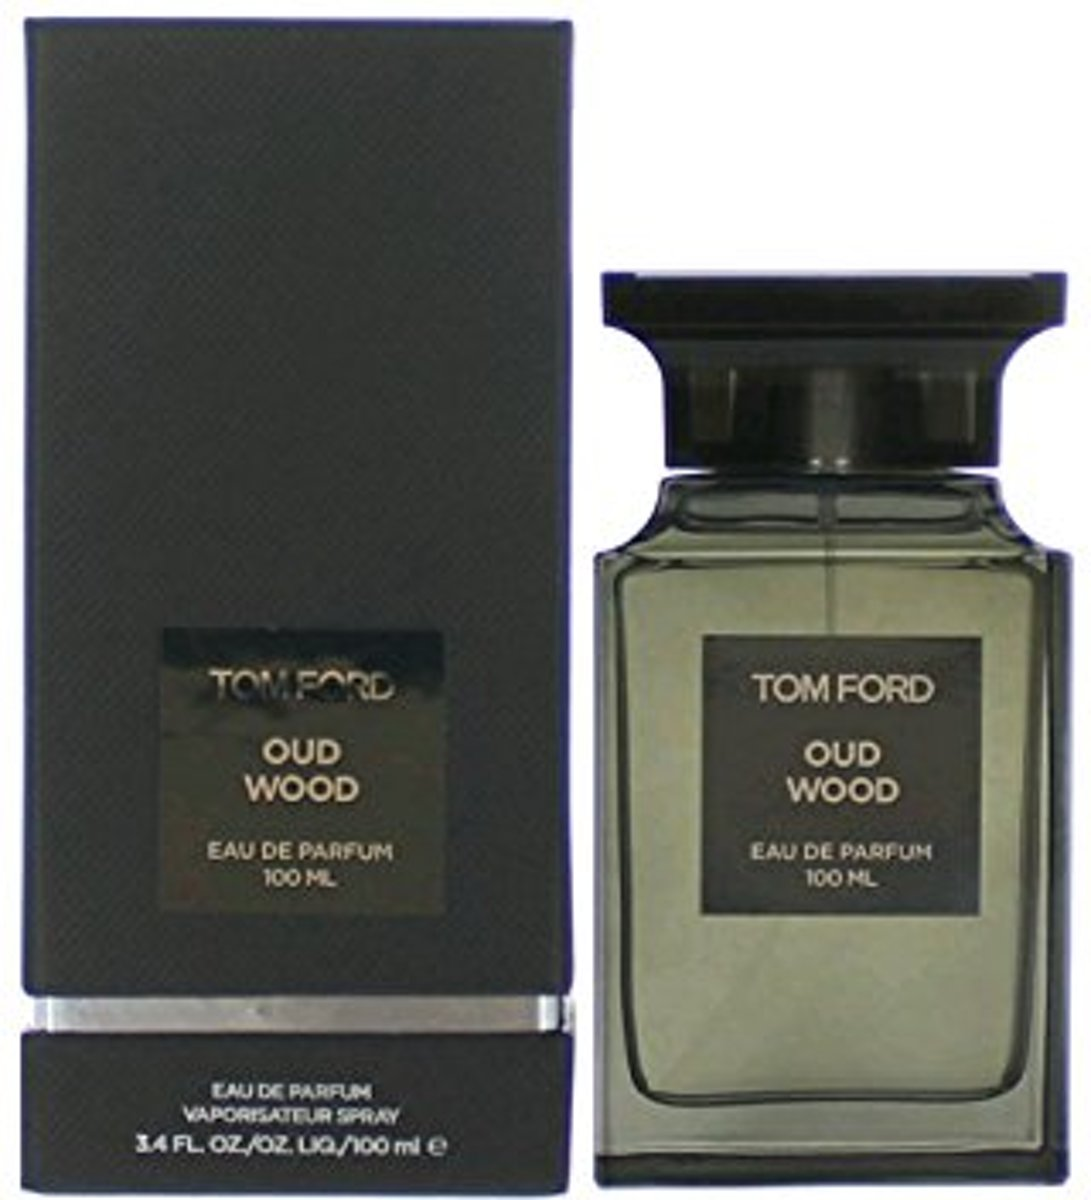 Tom Ford Tom Ford Oud Wood Private Blend Collection - 100ml - Eau de parfum